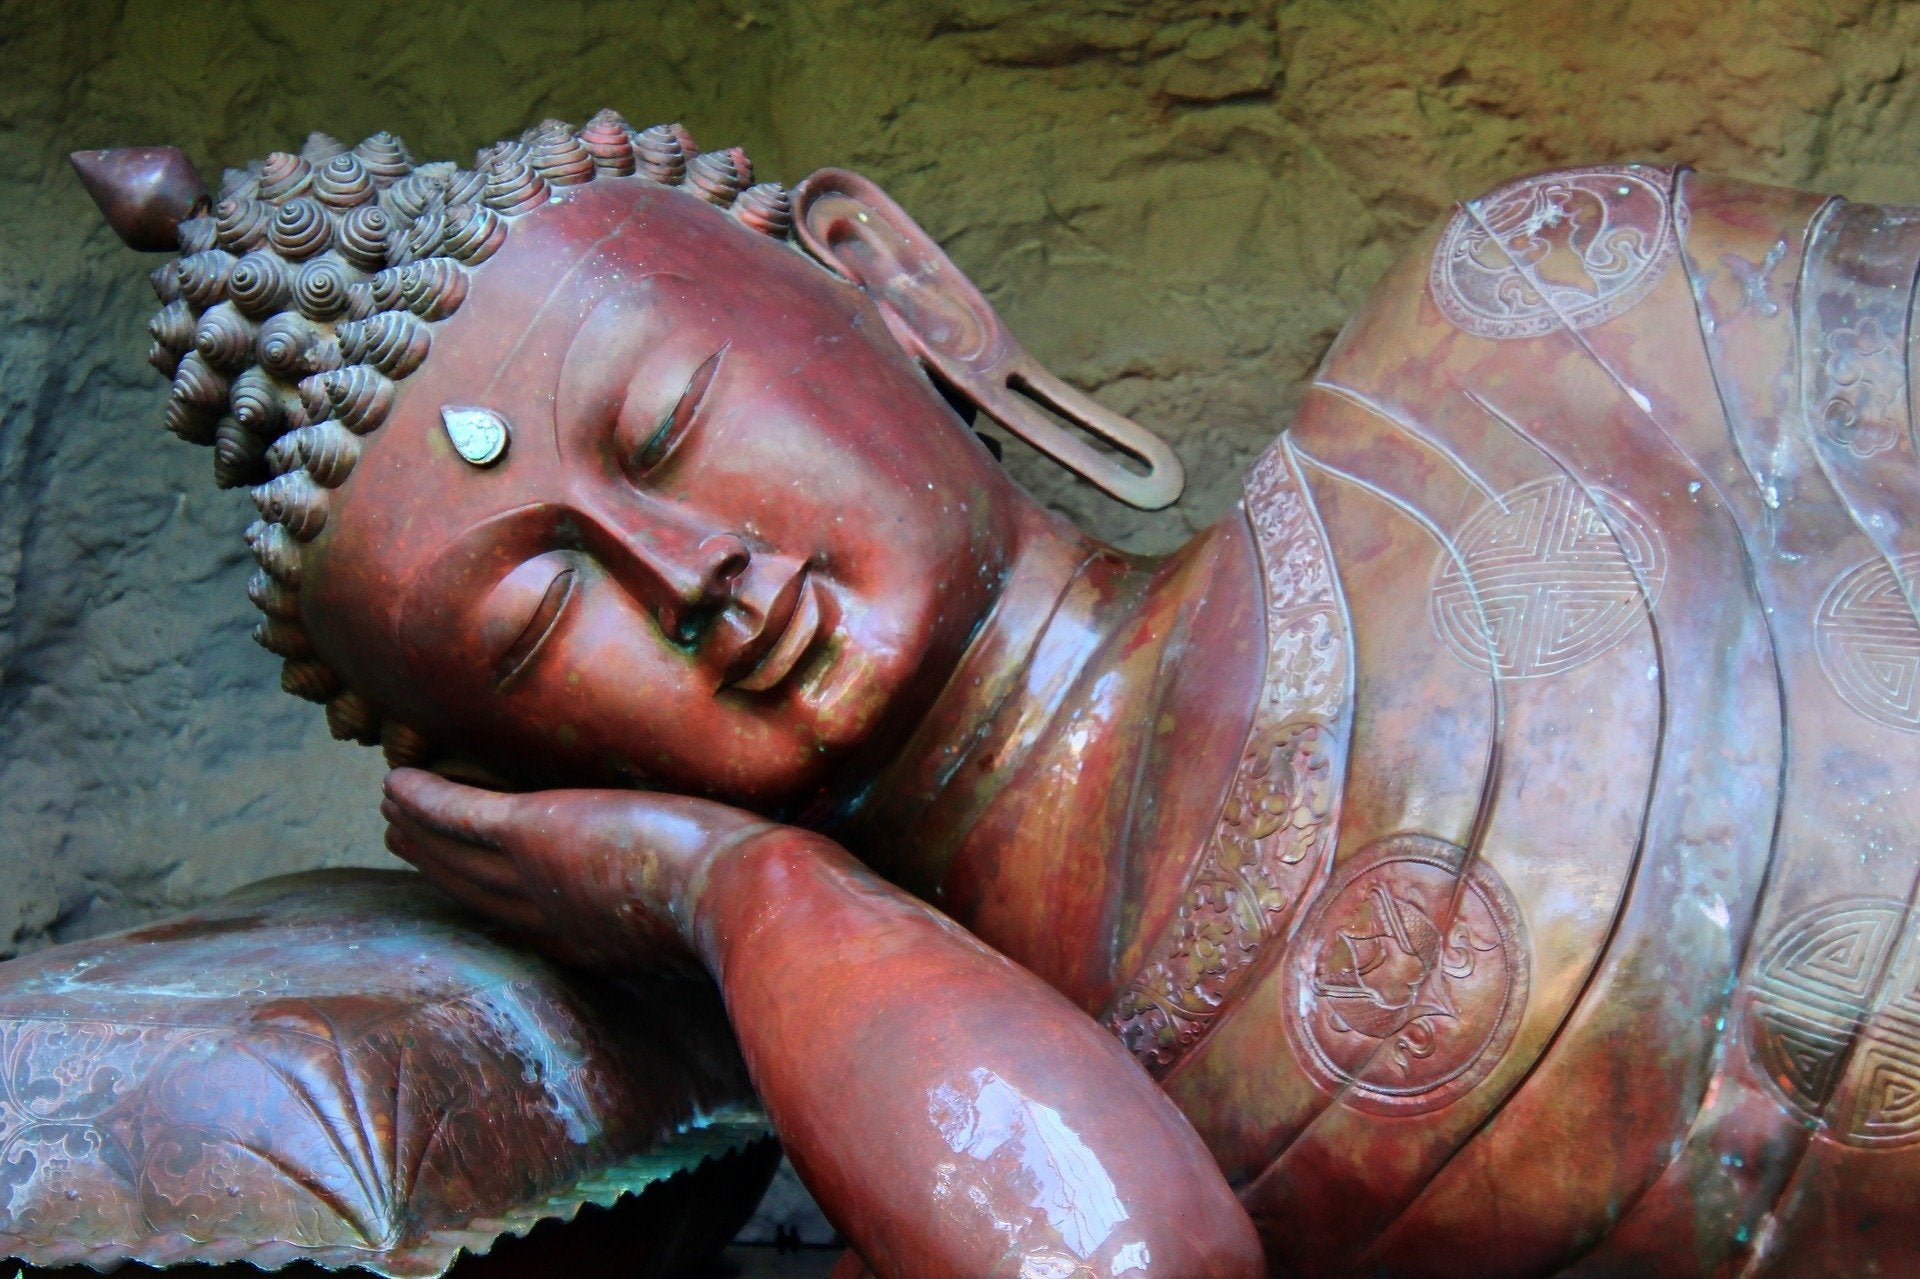 What Do I Need For Yoga Class - Top 7 Things You Need to Begin Yoga. sleeping buddha statue